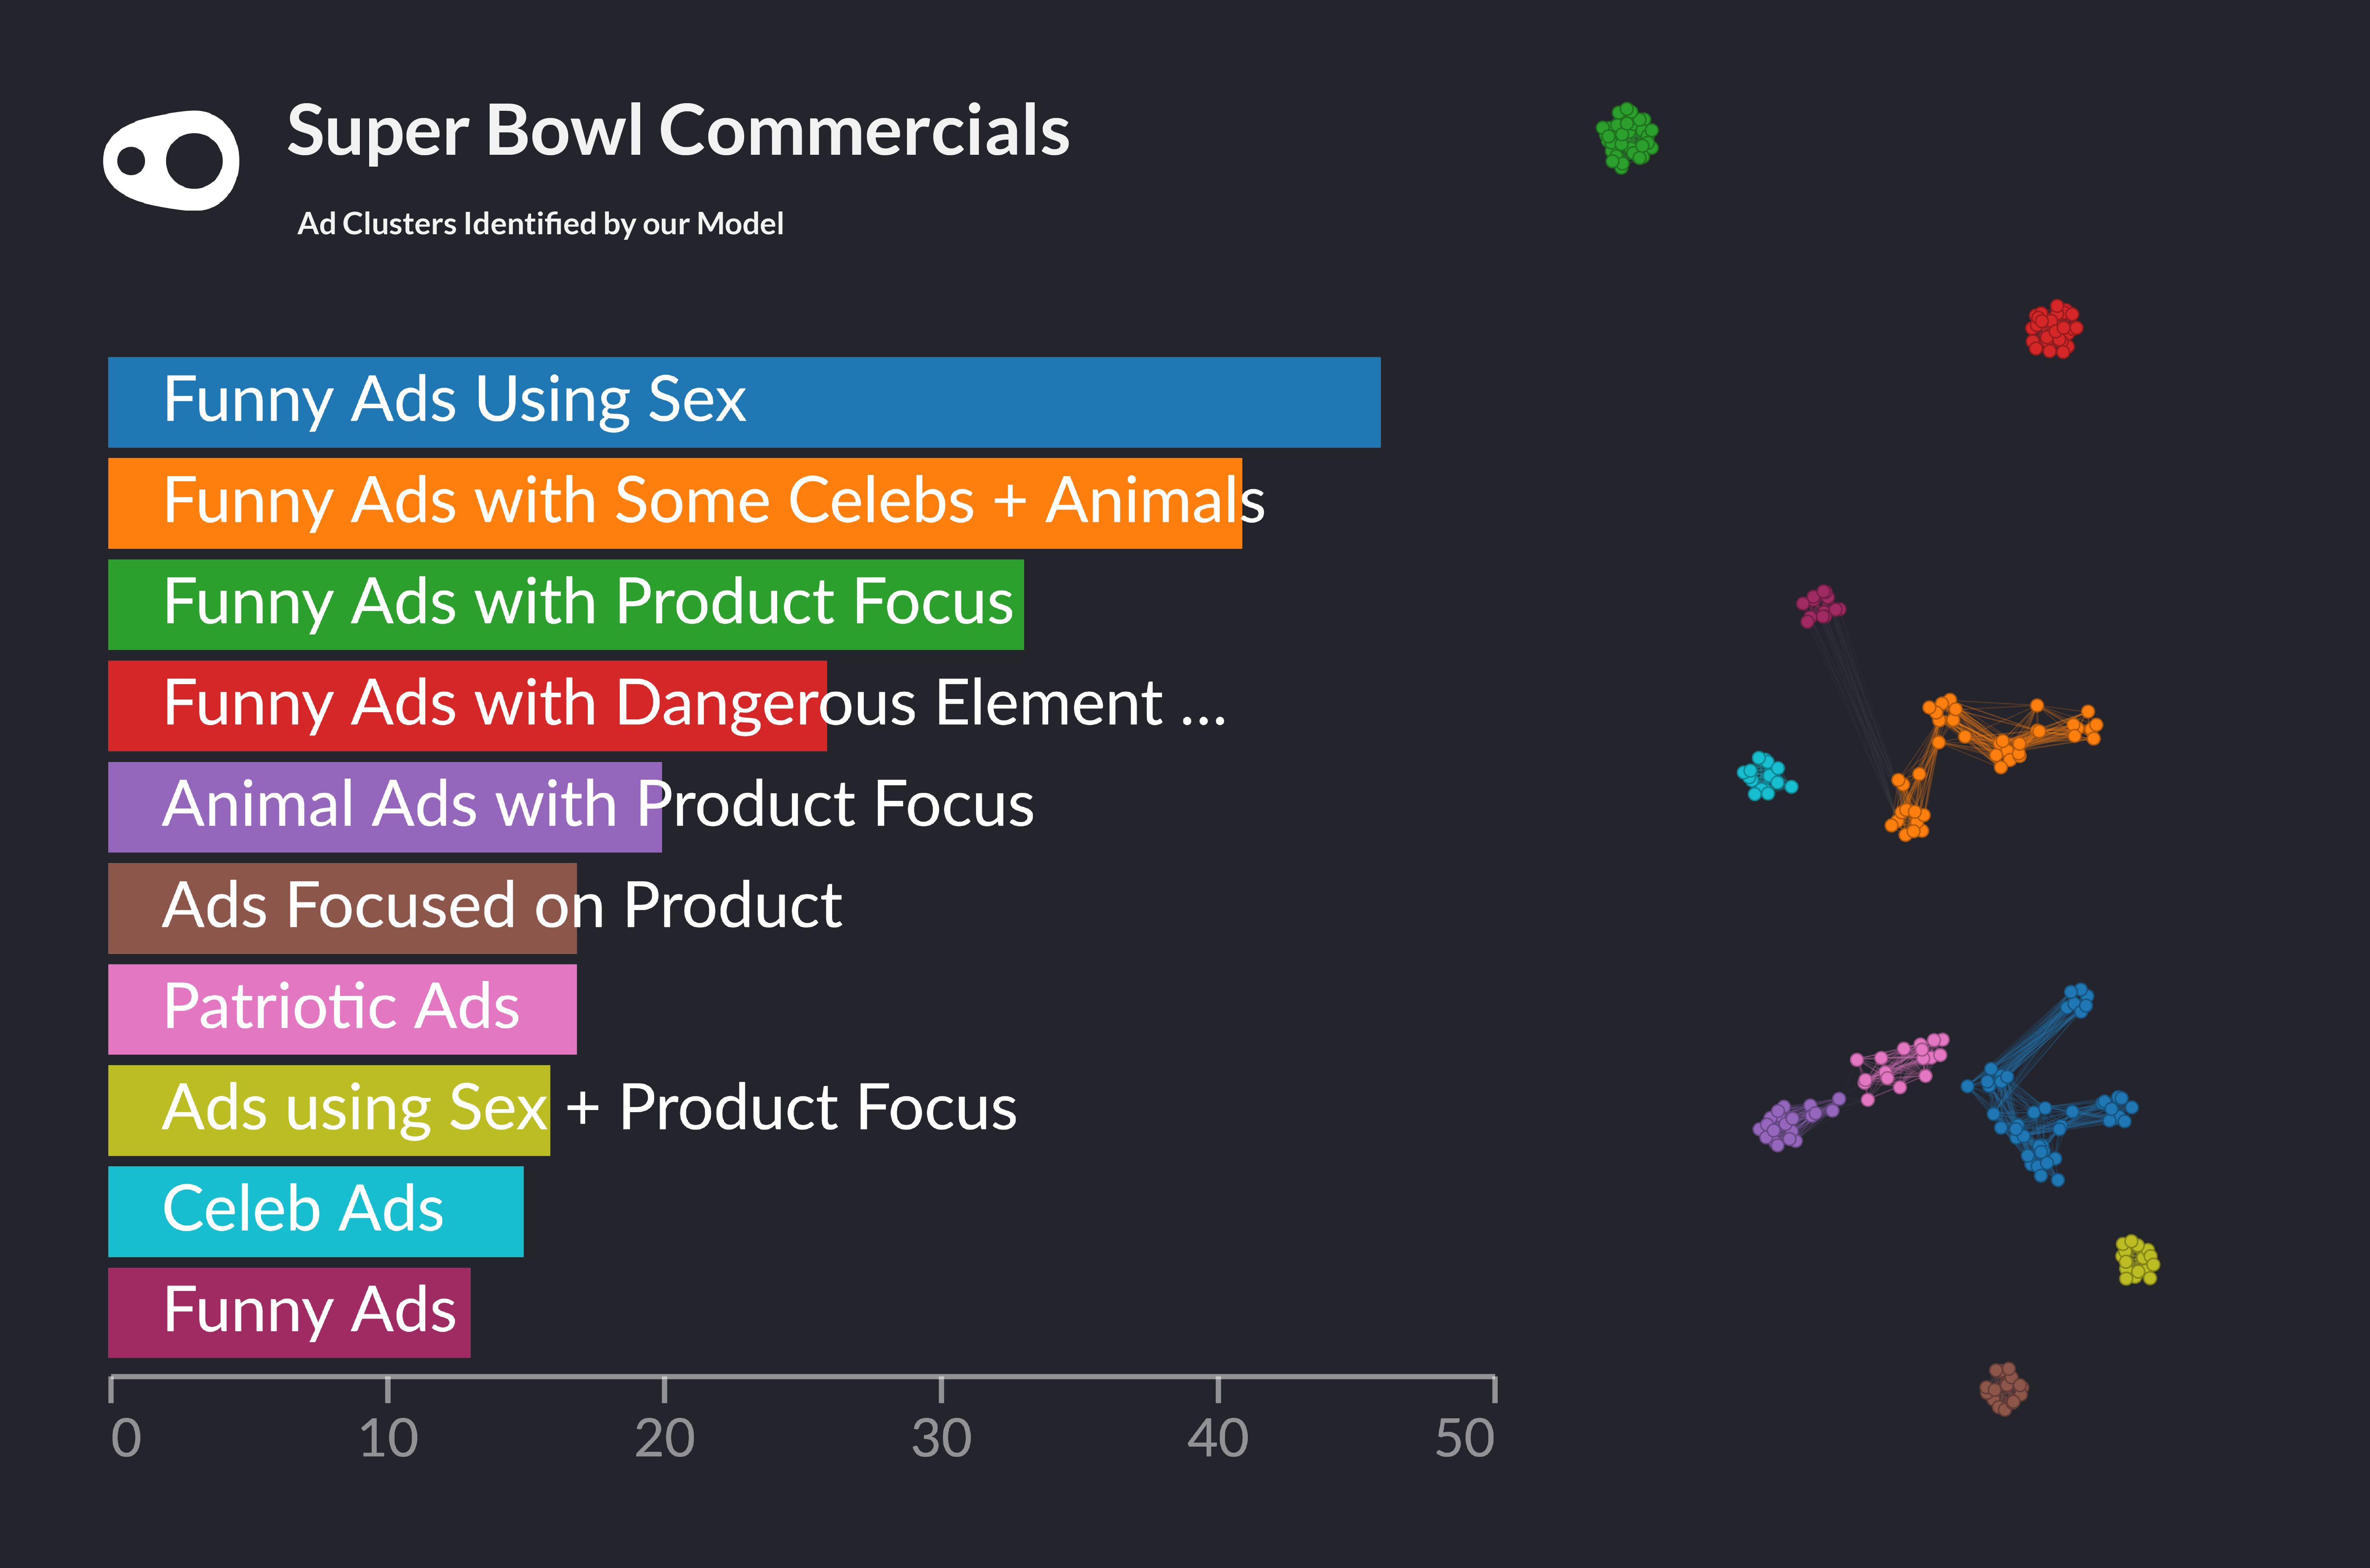 The clusters of superbowl commercials recognised by our model.